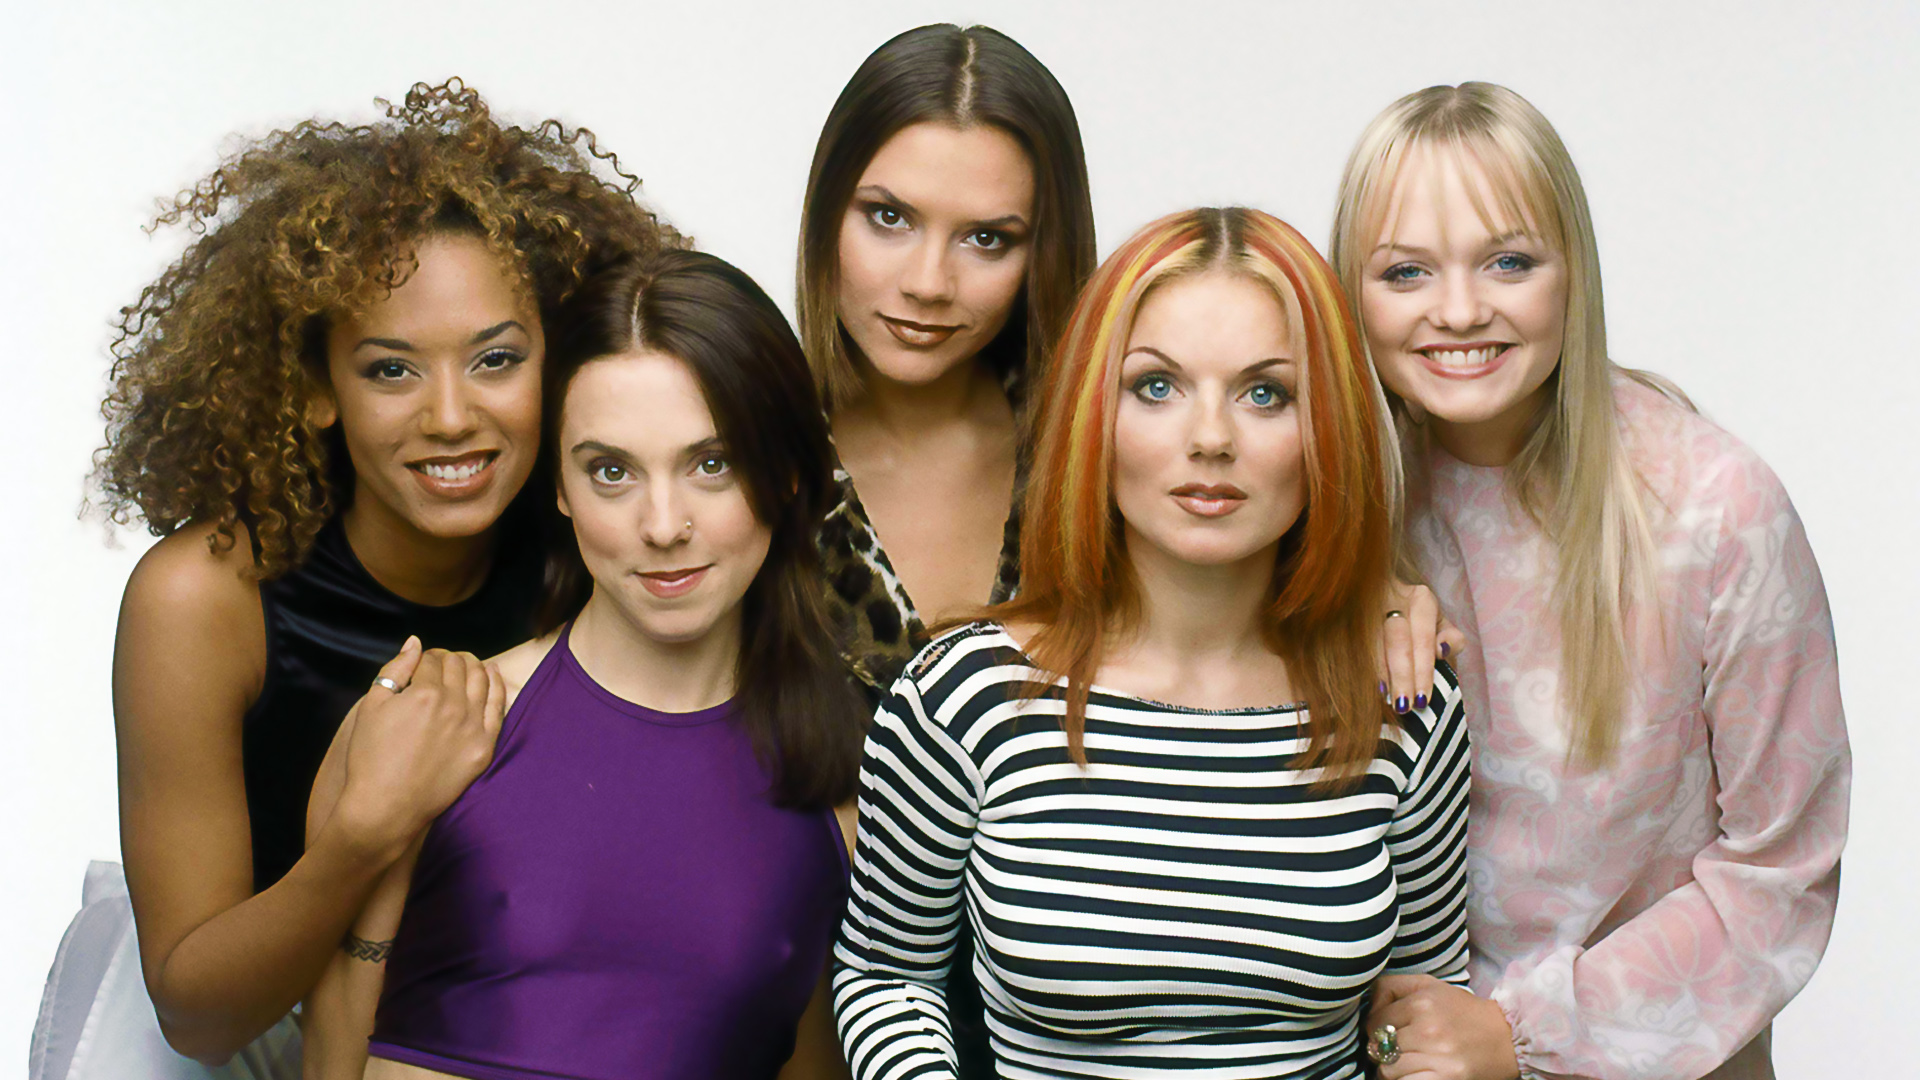 Say You'll Be There av Spice Girls